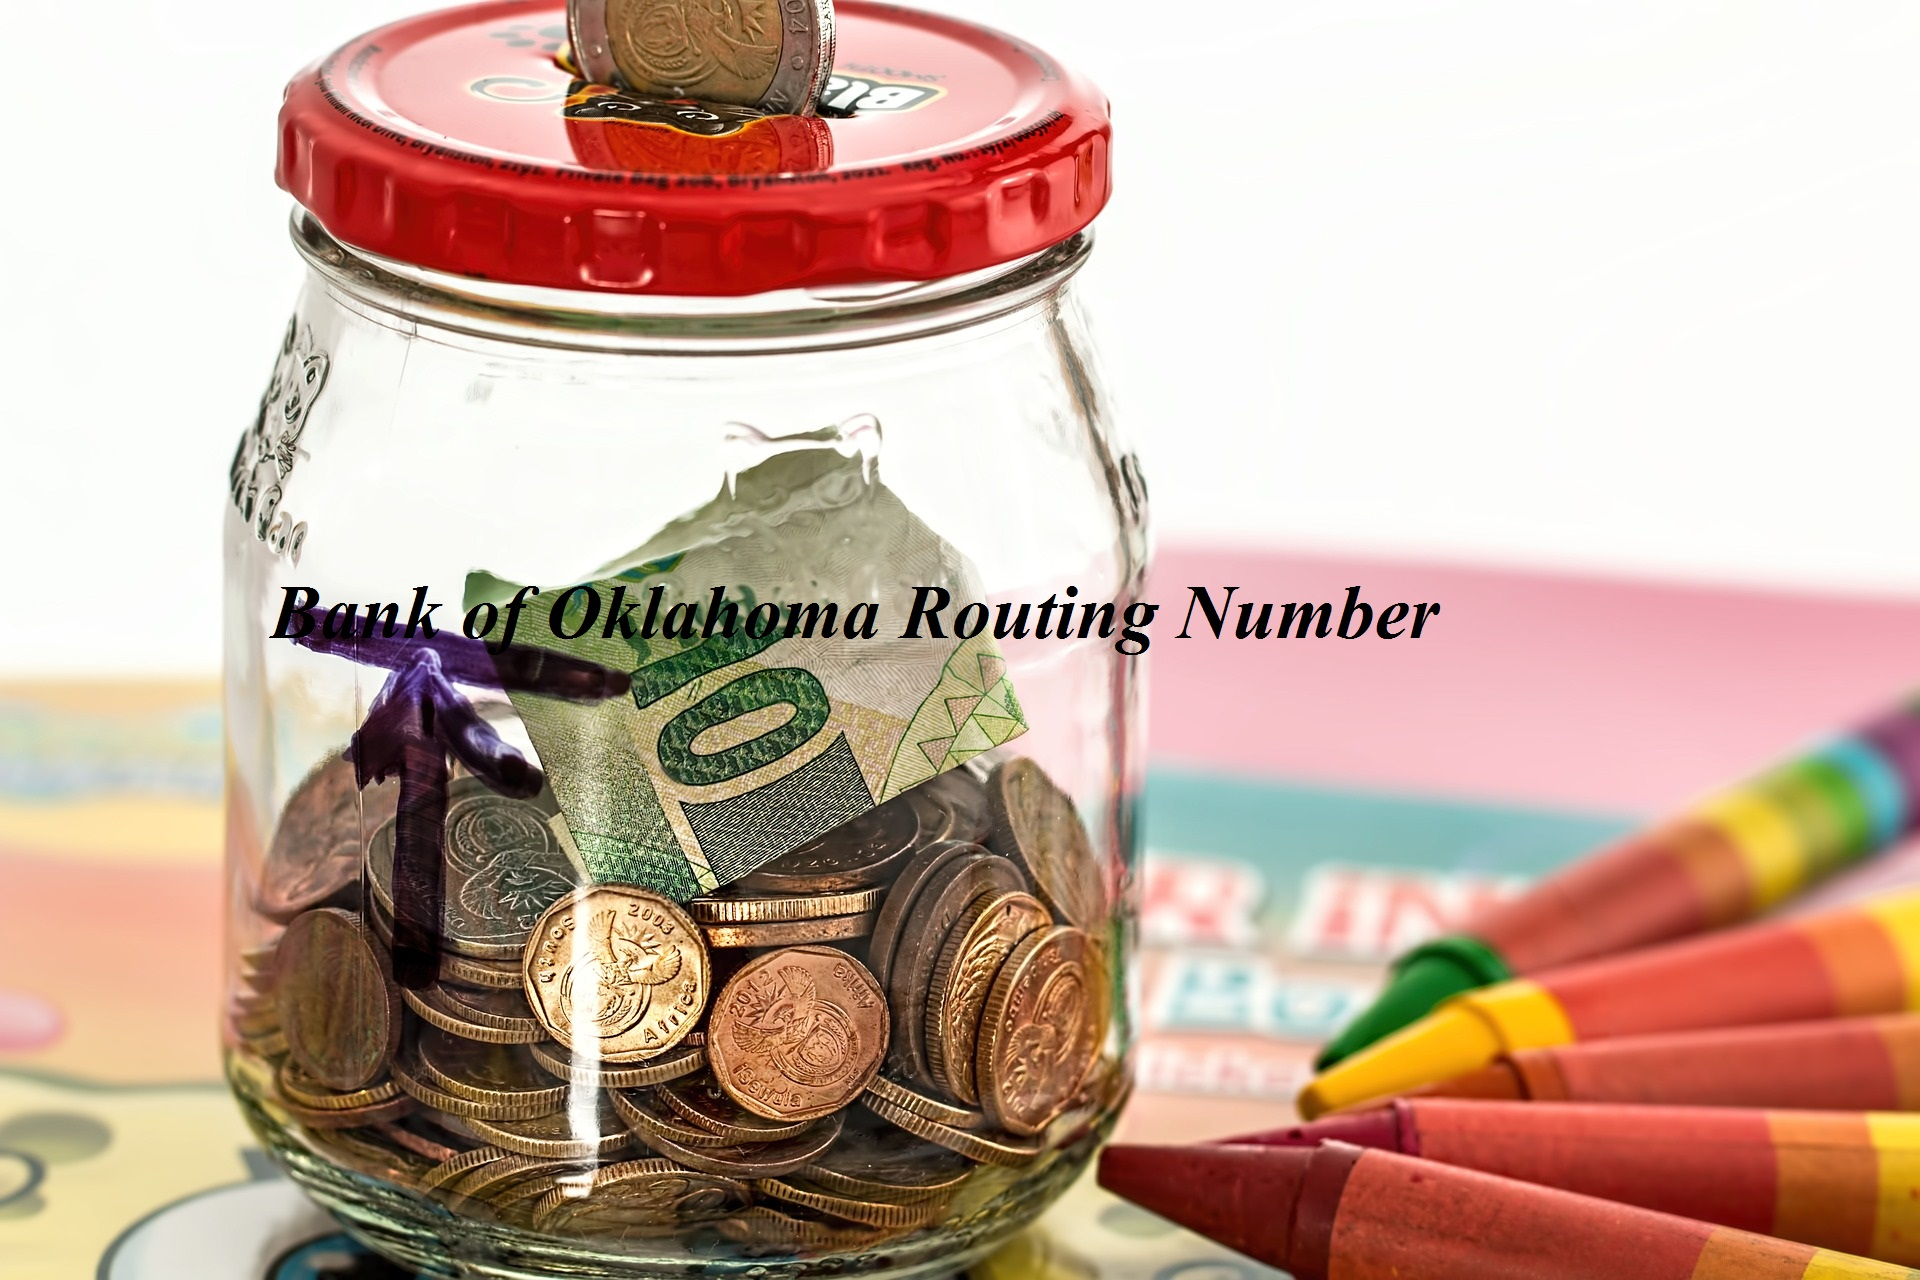 Bank of Oklahoma Routing Number